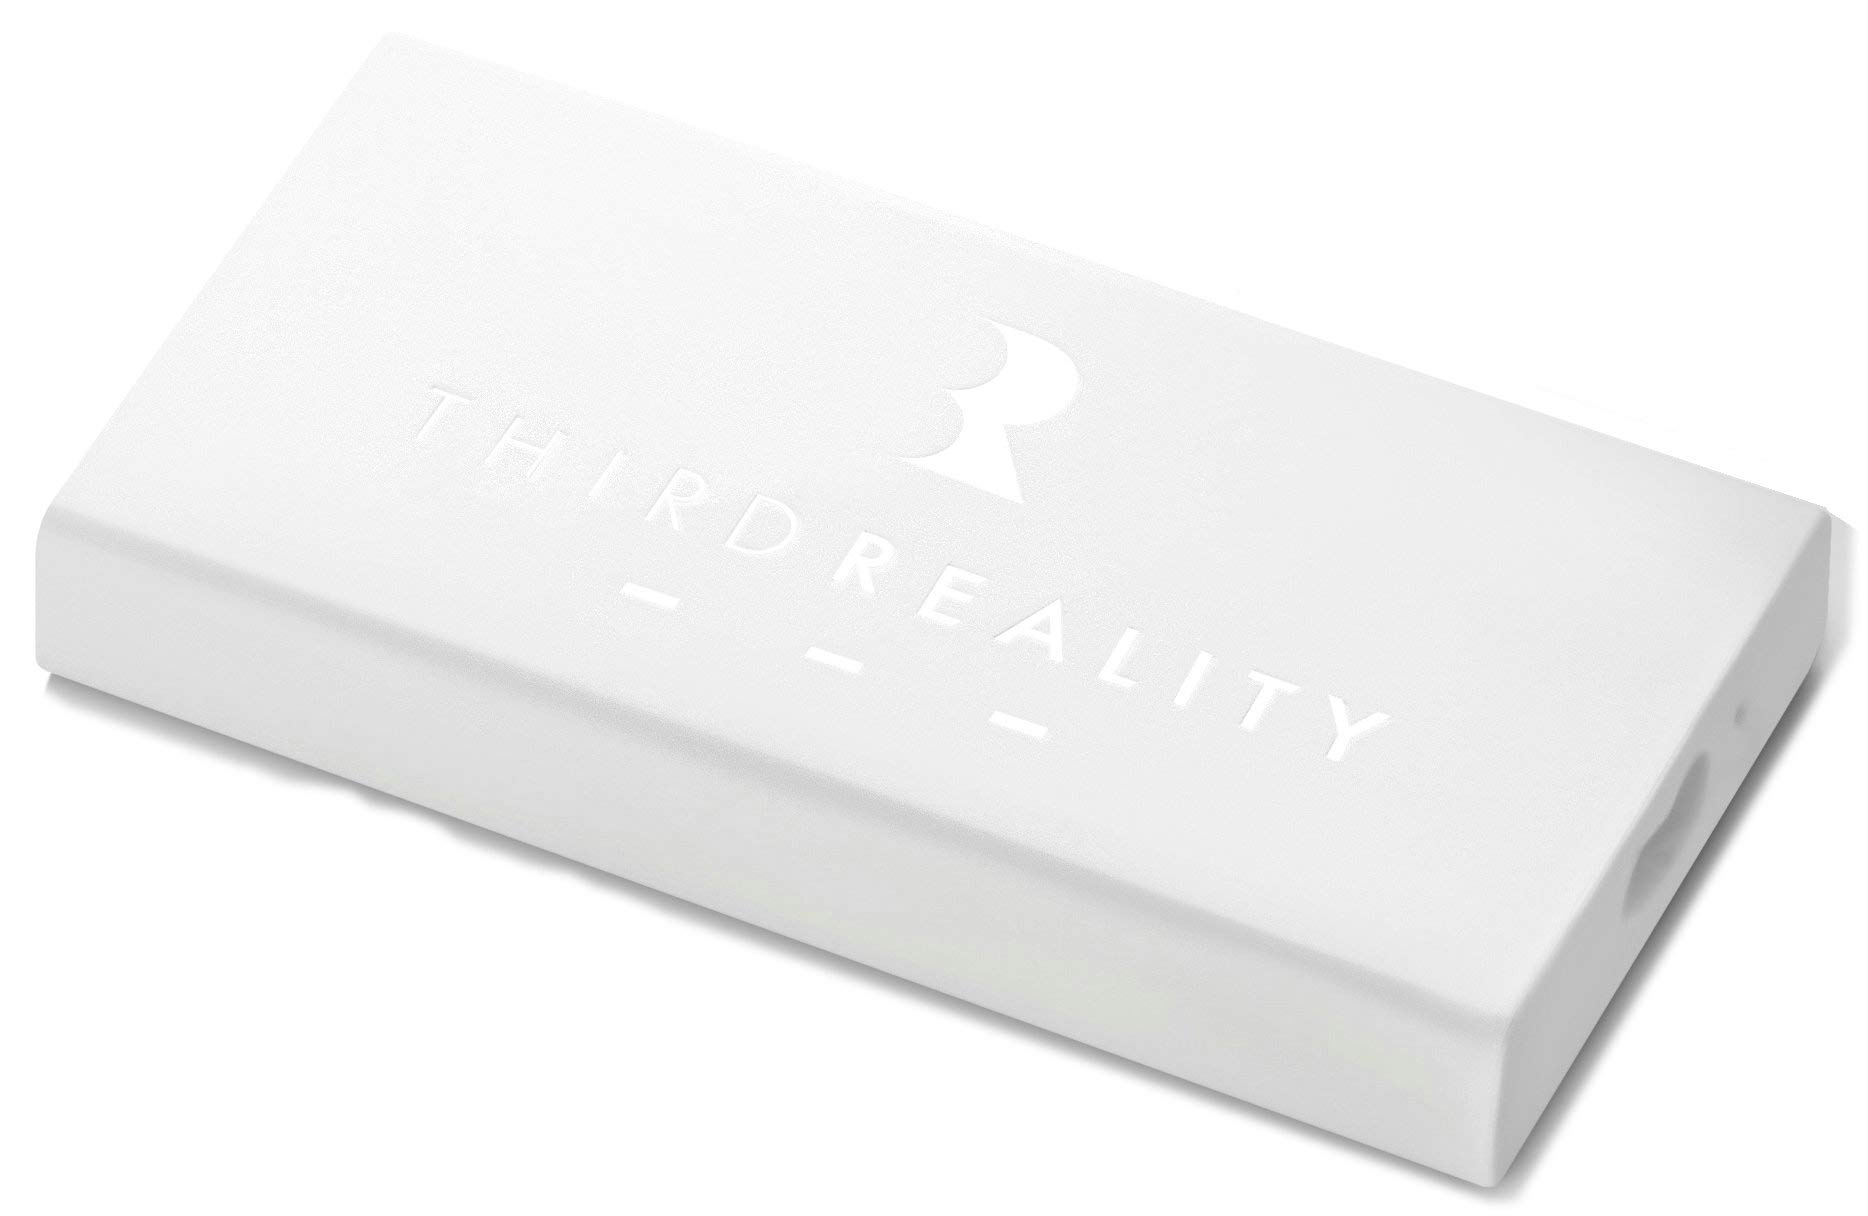 THIRDREALITY Smart Home Hub - Smart Home Automation Zigbee Hub, share power with your voice devices, works with Alexa and Google Home